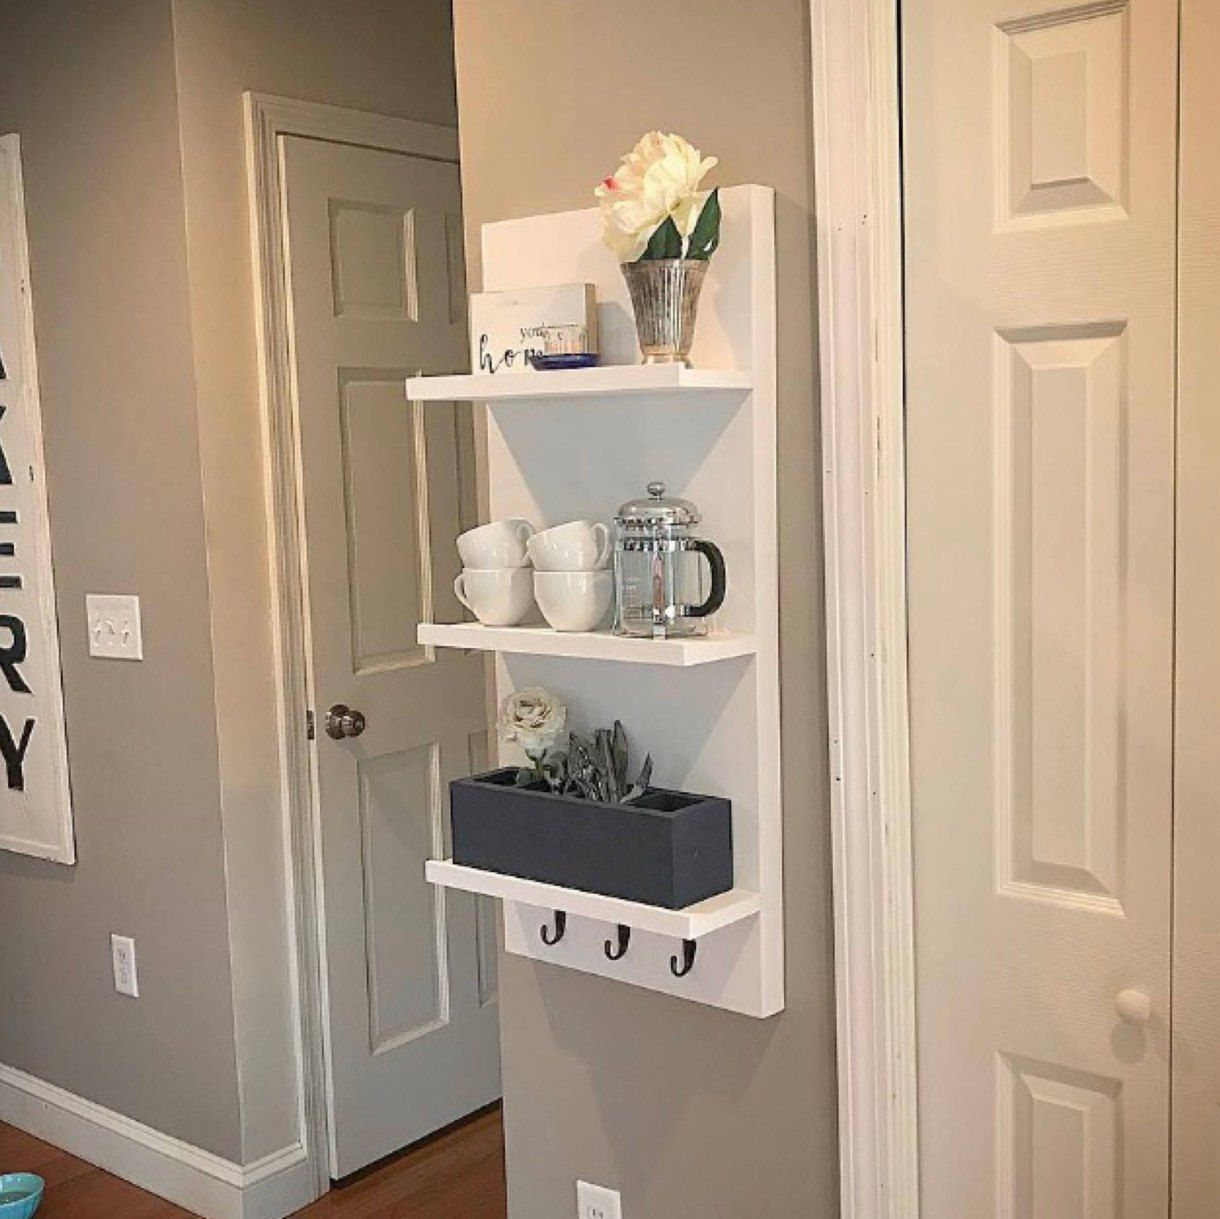 Stylish Storage Ideas For Small Bedrooms: Are You In Need Of Some Genius Bedroom Storage Ideas